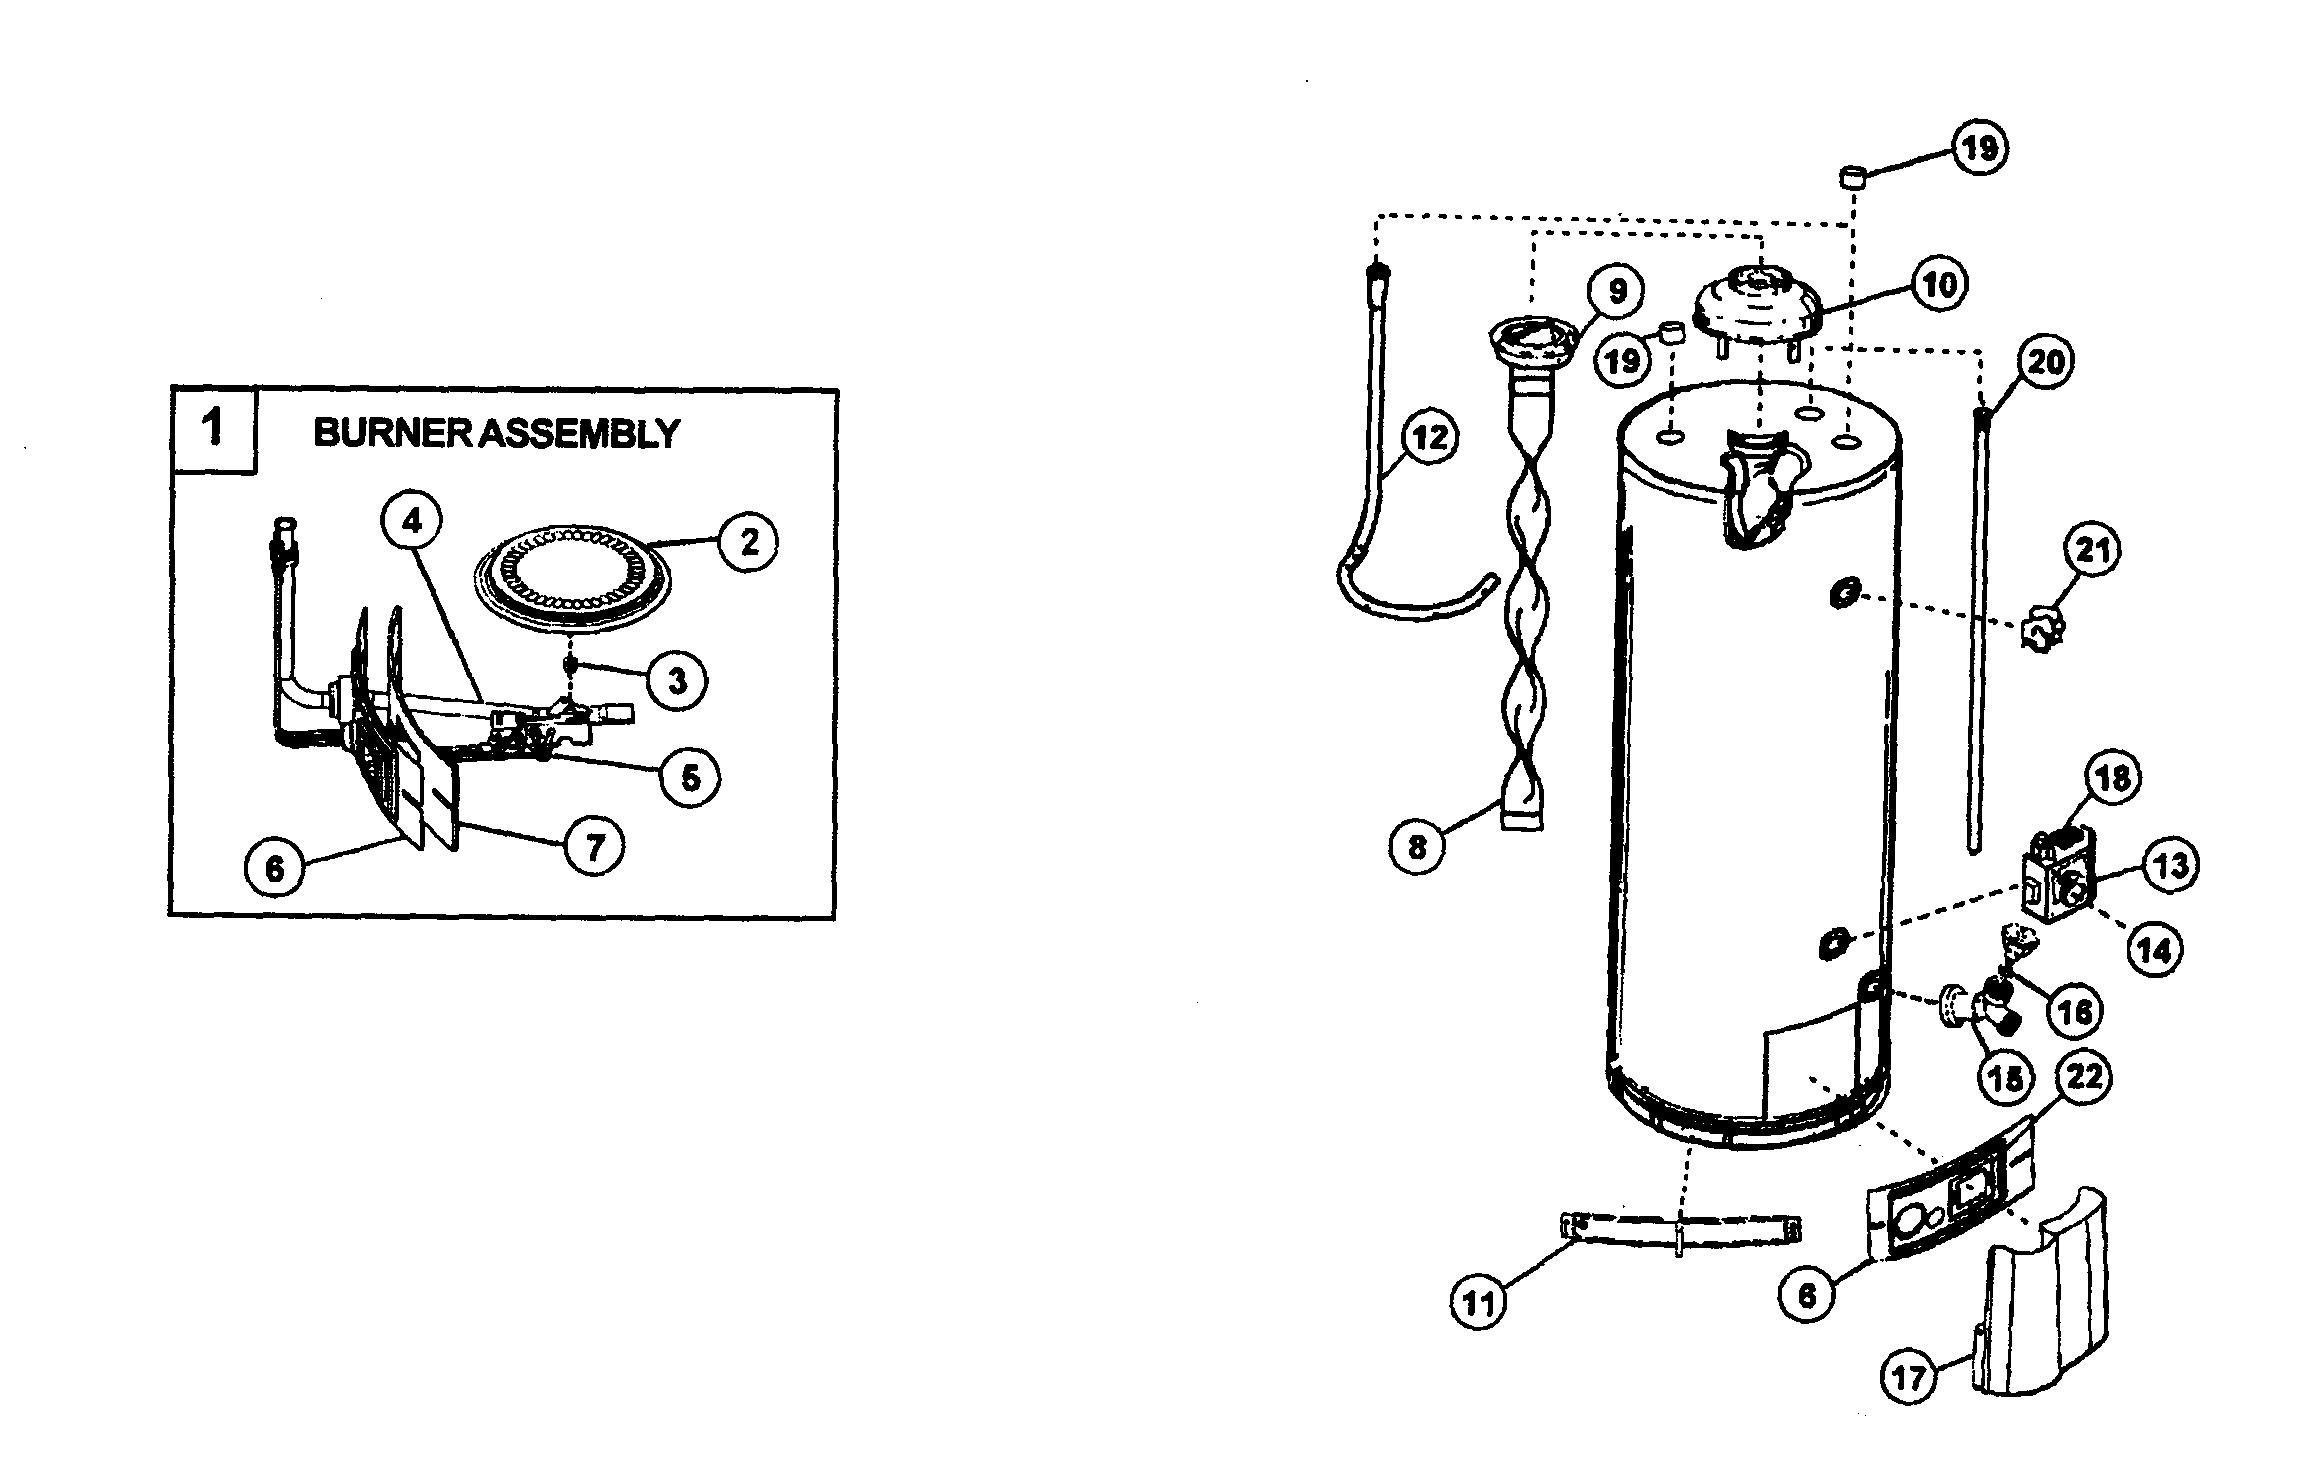 WATER HEATER Diagram & Parts List for Model 153339260 ...